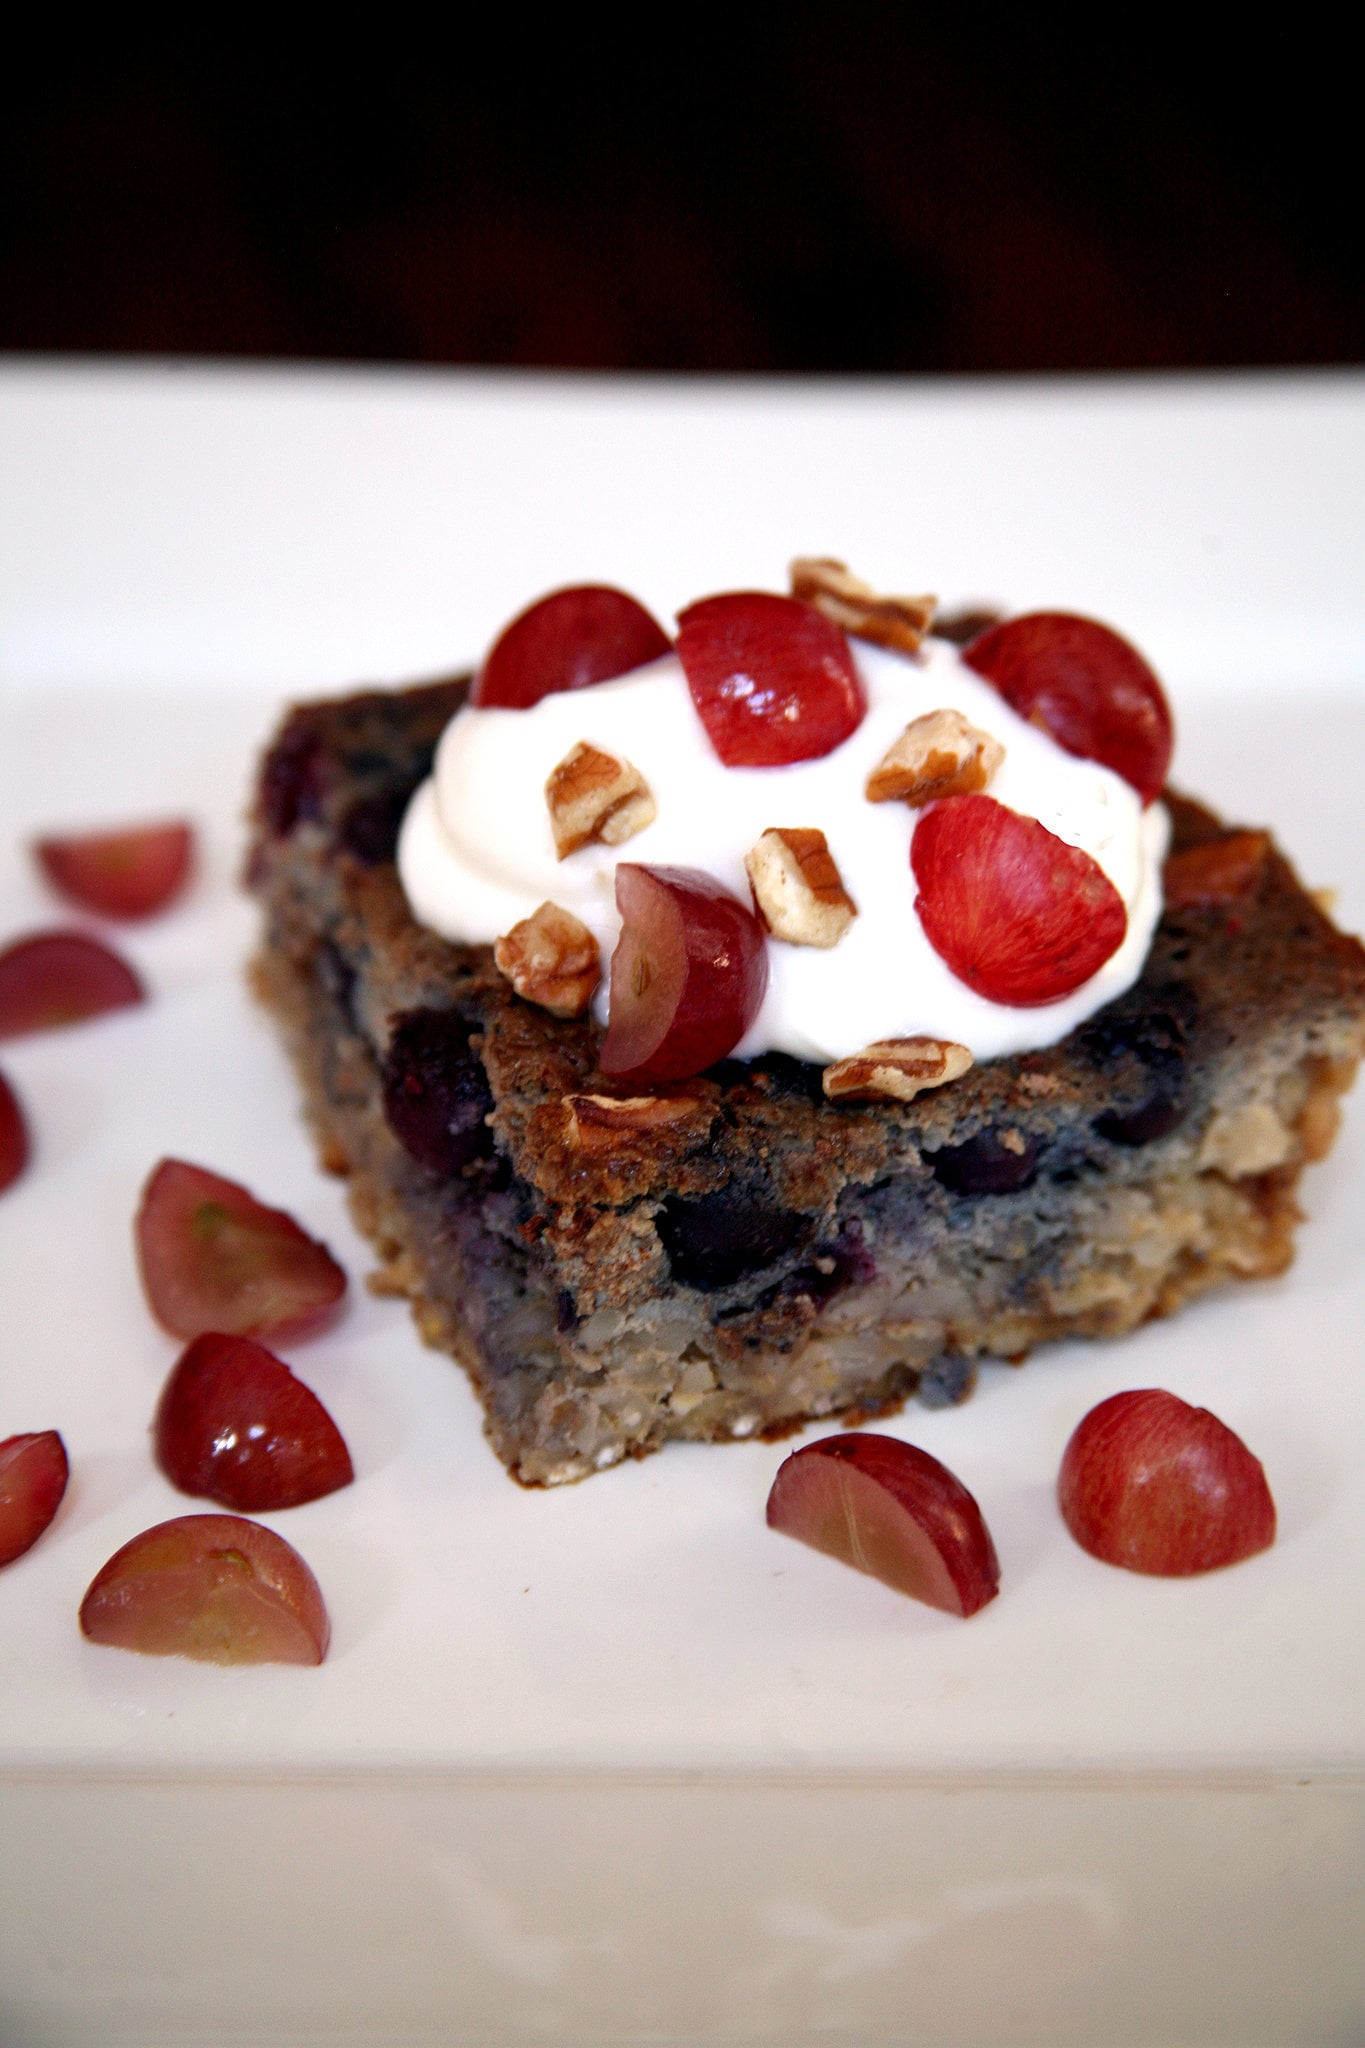 Blueberry-Grape Barley Bake